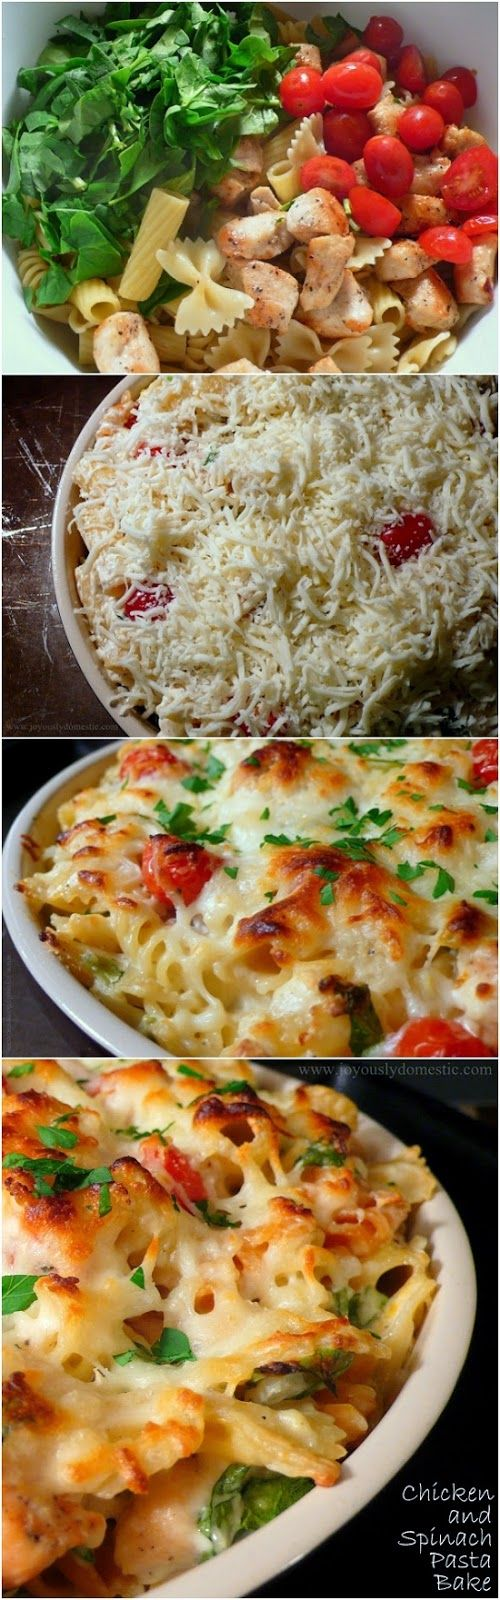 Chicken & Spinach Pasta Bake - This was amazing but not for anyone on a diet that's for sure!